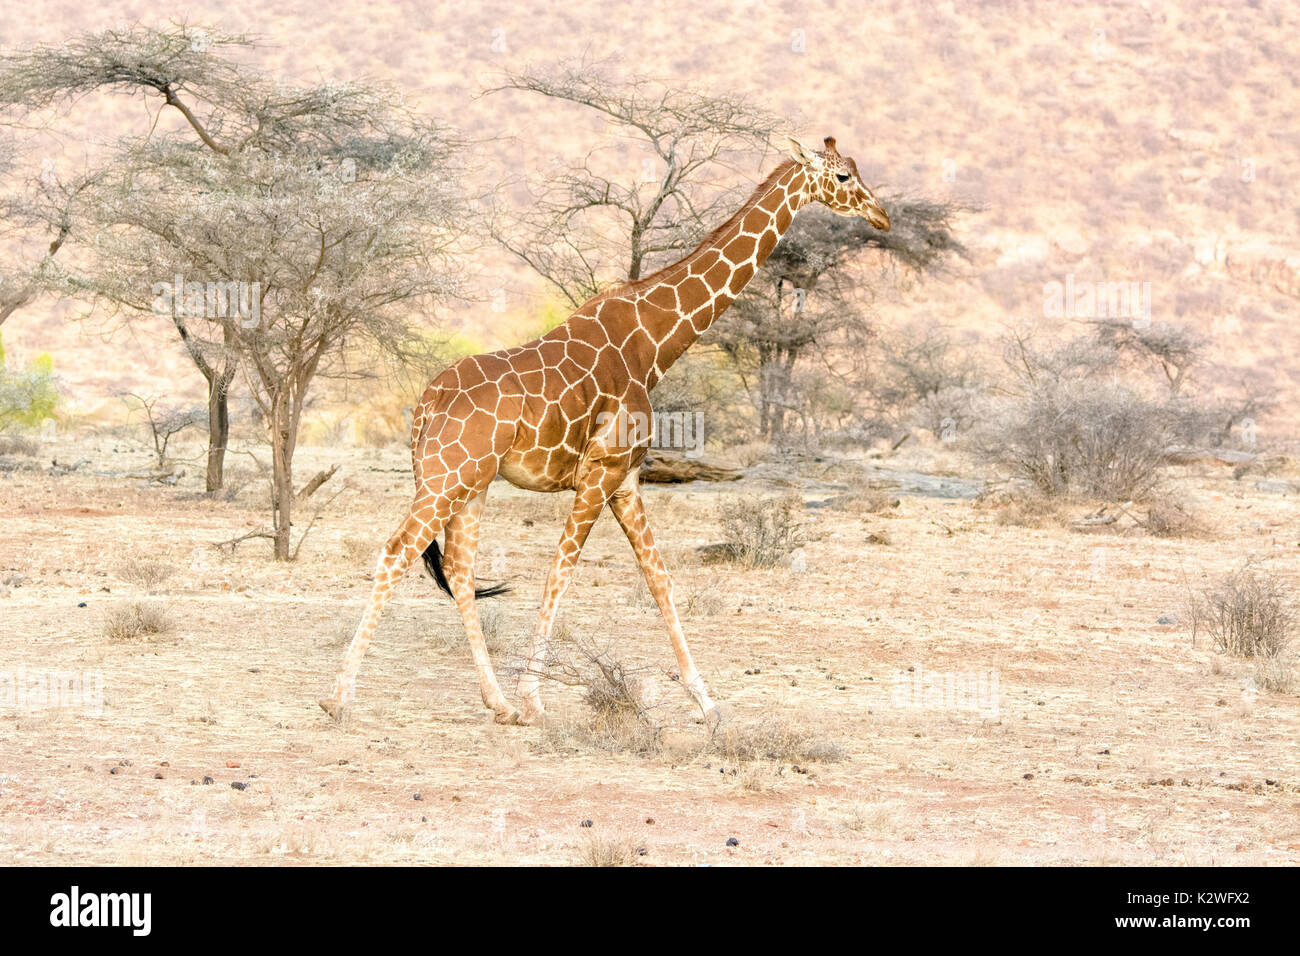 Side view of a solitary Reticulated Giraffe, Giraffa camelopardalis reticulata, walking in Buffalo Springs National Reserve, Kenya, East Africa Stock Photo